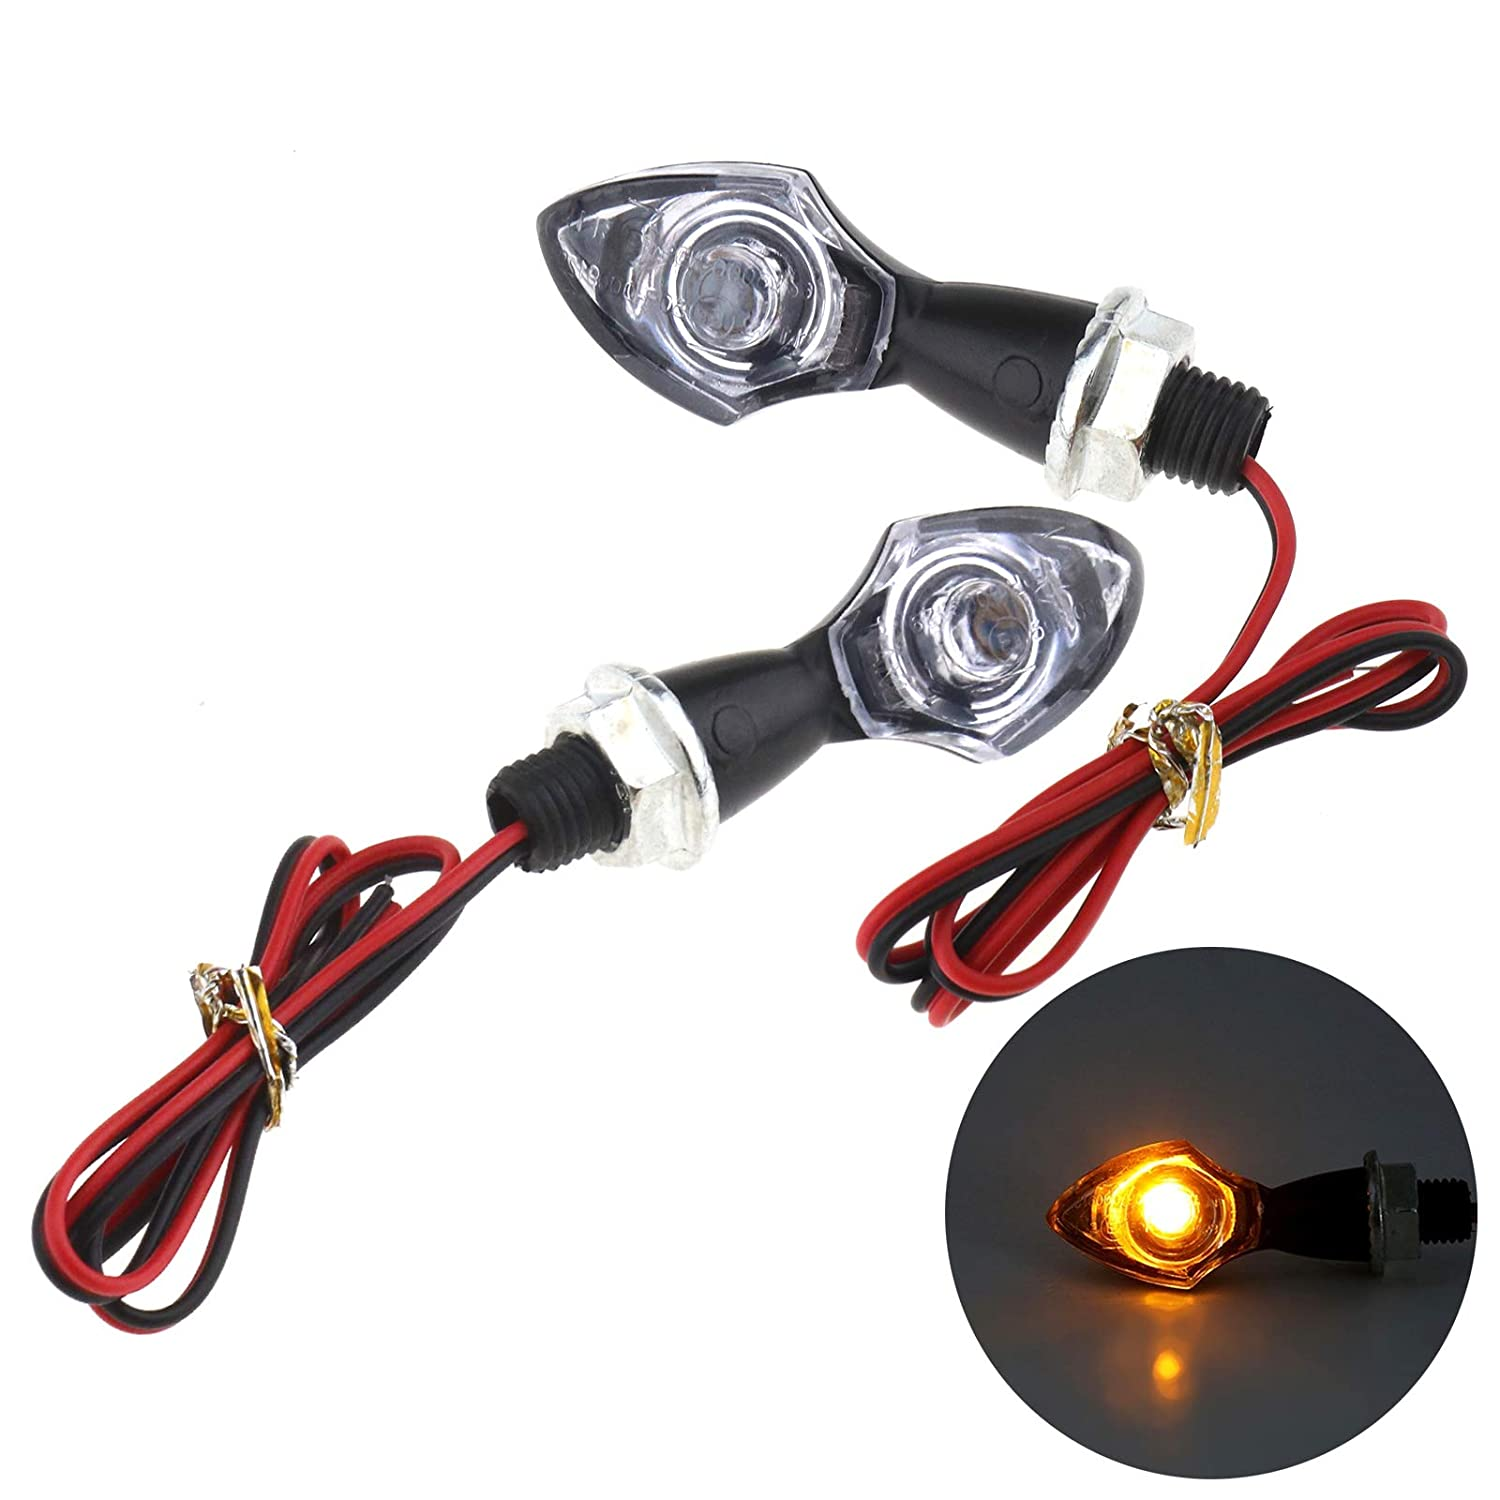 2 x Universal 12V Motorcycle LED Indicator Lights for Harley Cruiser Chopper Retro Custom Cruiser Cafe Racer ATV